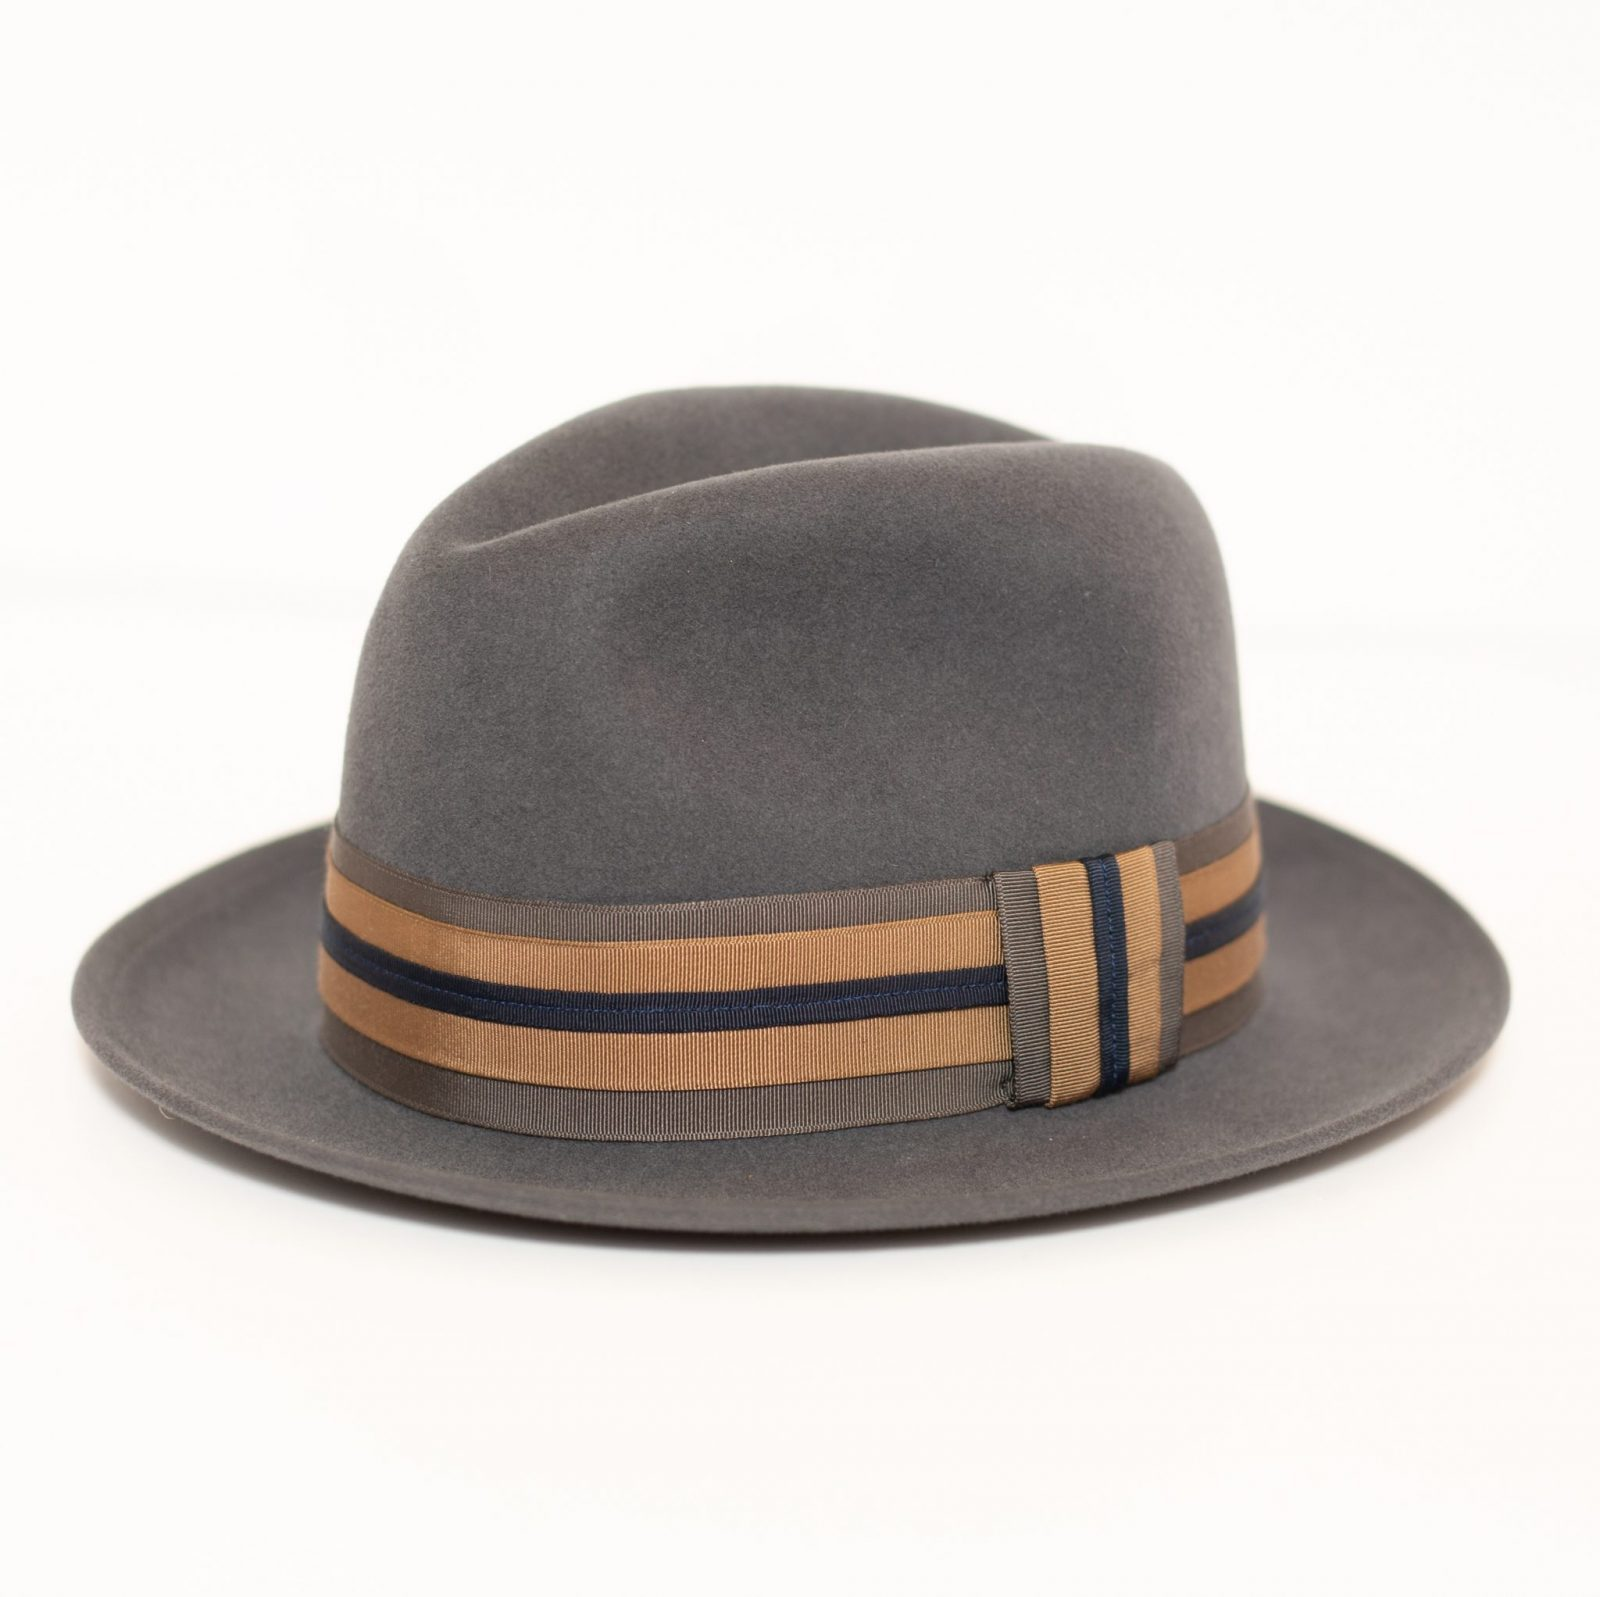 90898319fdbbd The Uptown Fedora by Biltmore - SherlockS